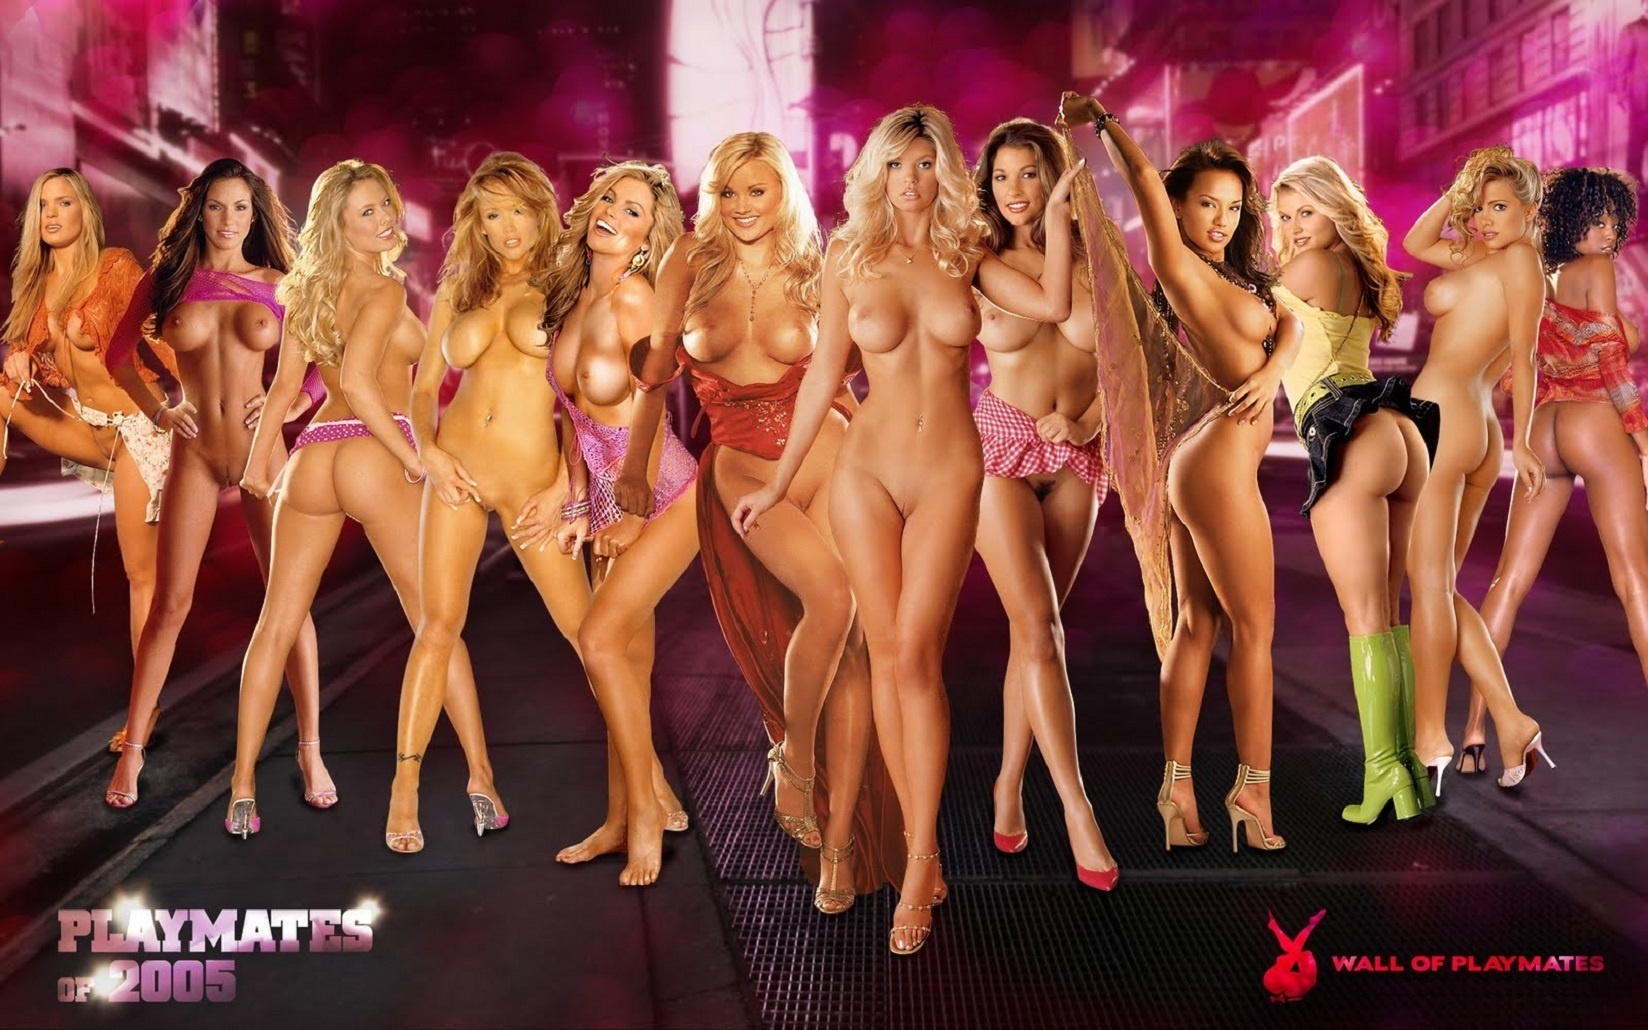 Wallpaper Playmates, Playmate, Playboy, Nude, Girls, Group -1214